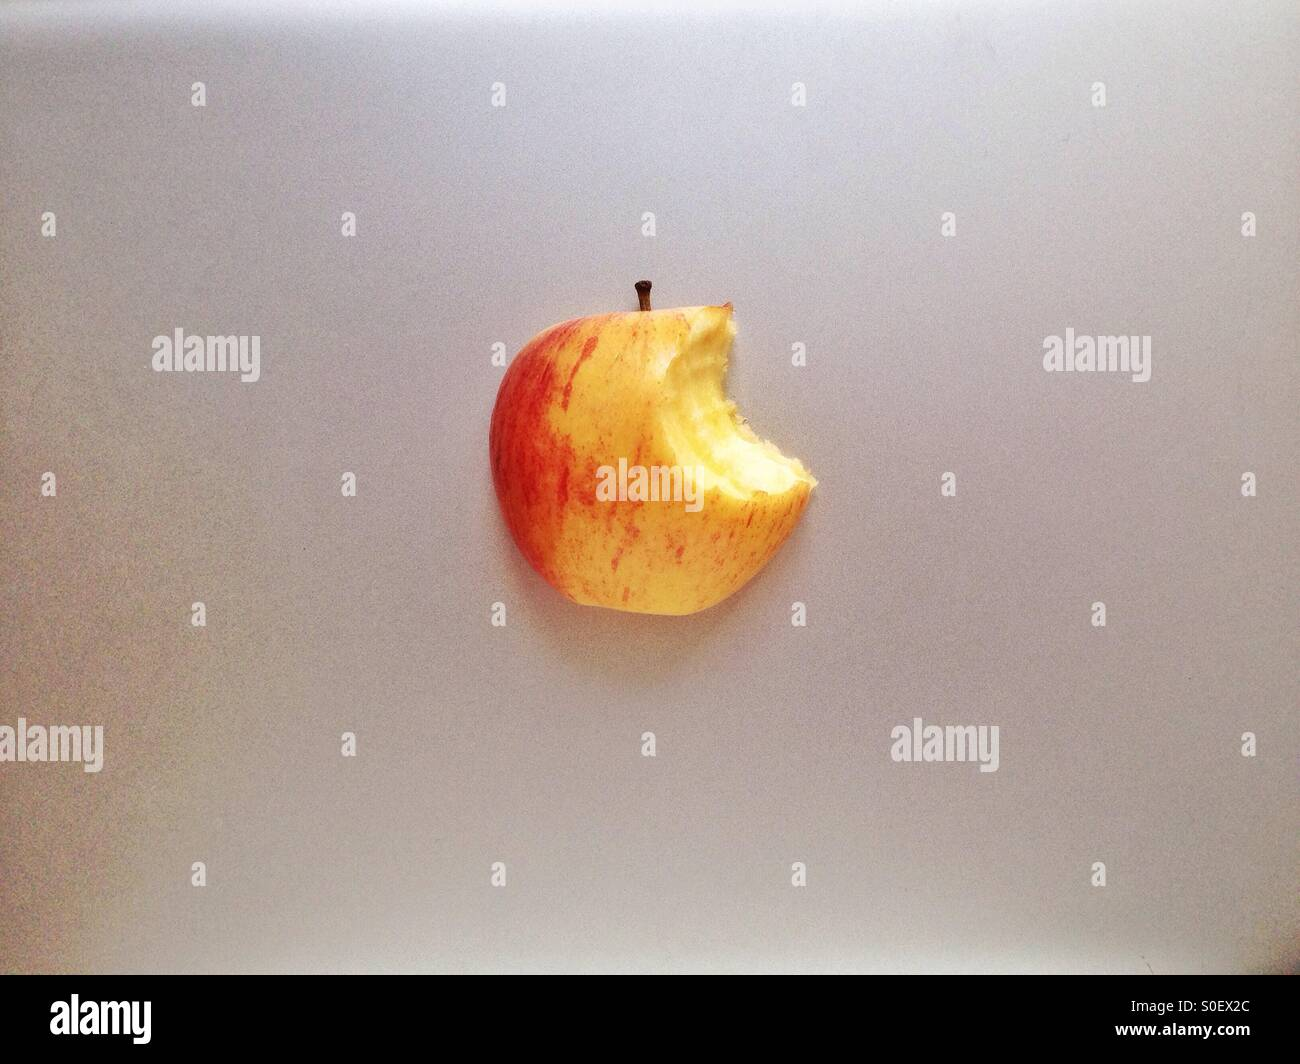 Aluminum Computer Surface with a bitten Apple - Stock Image